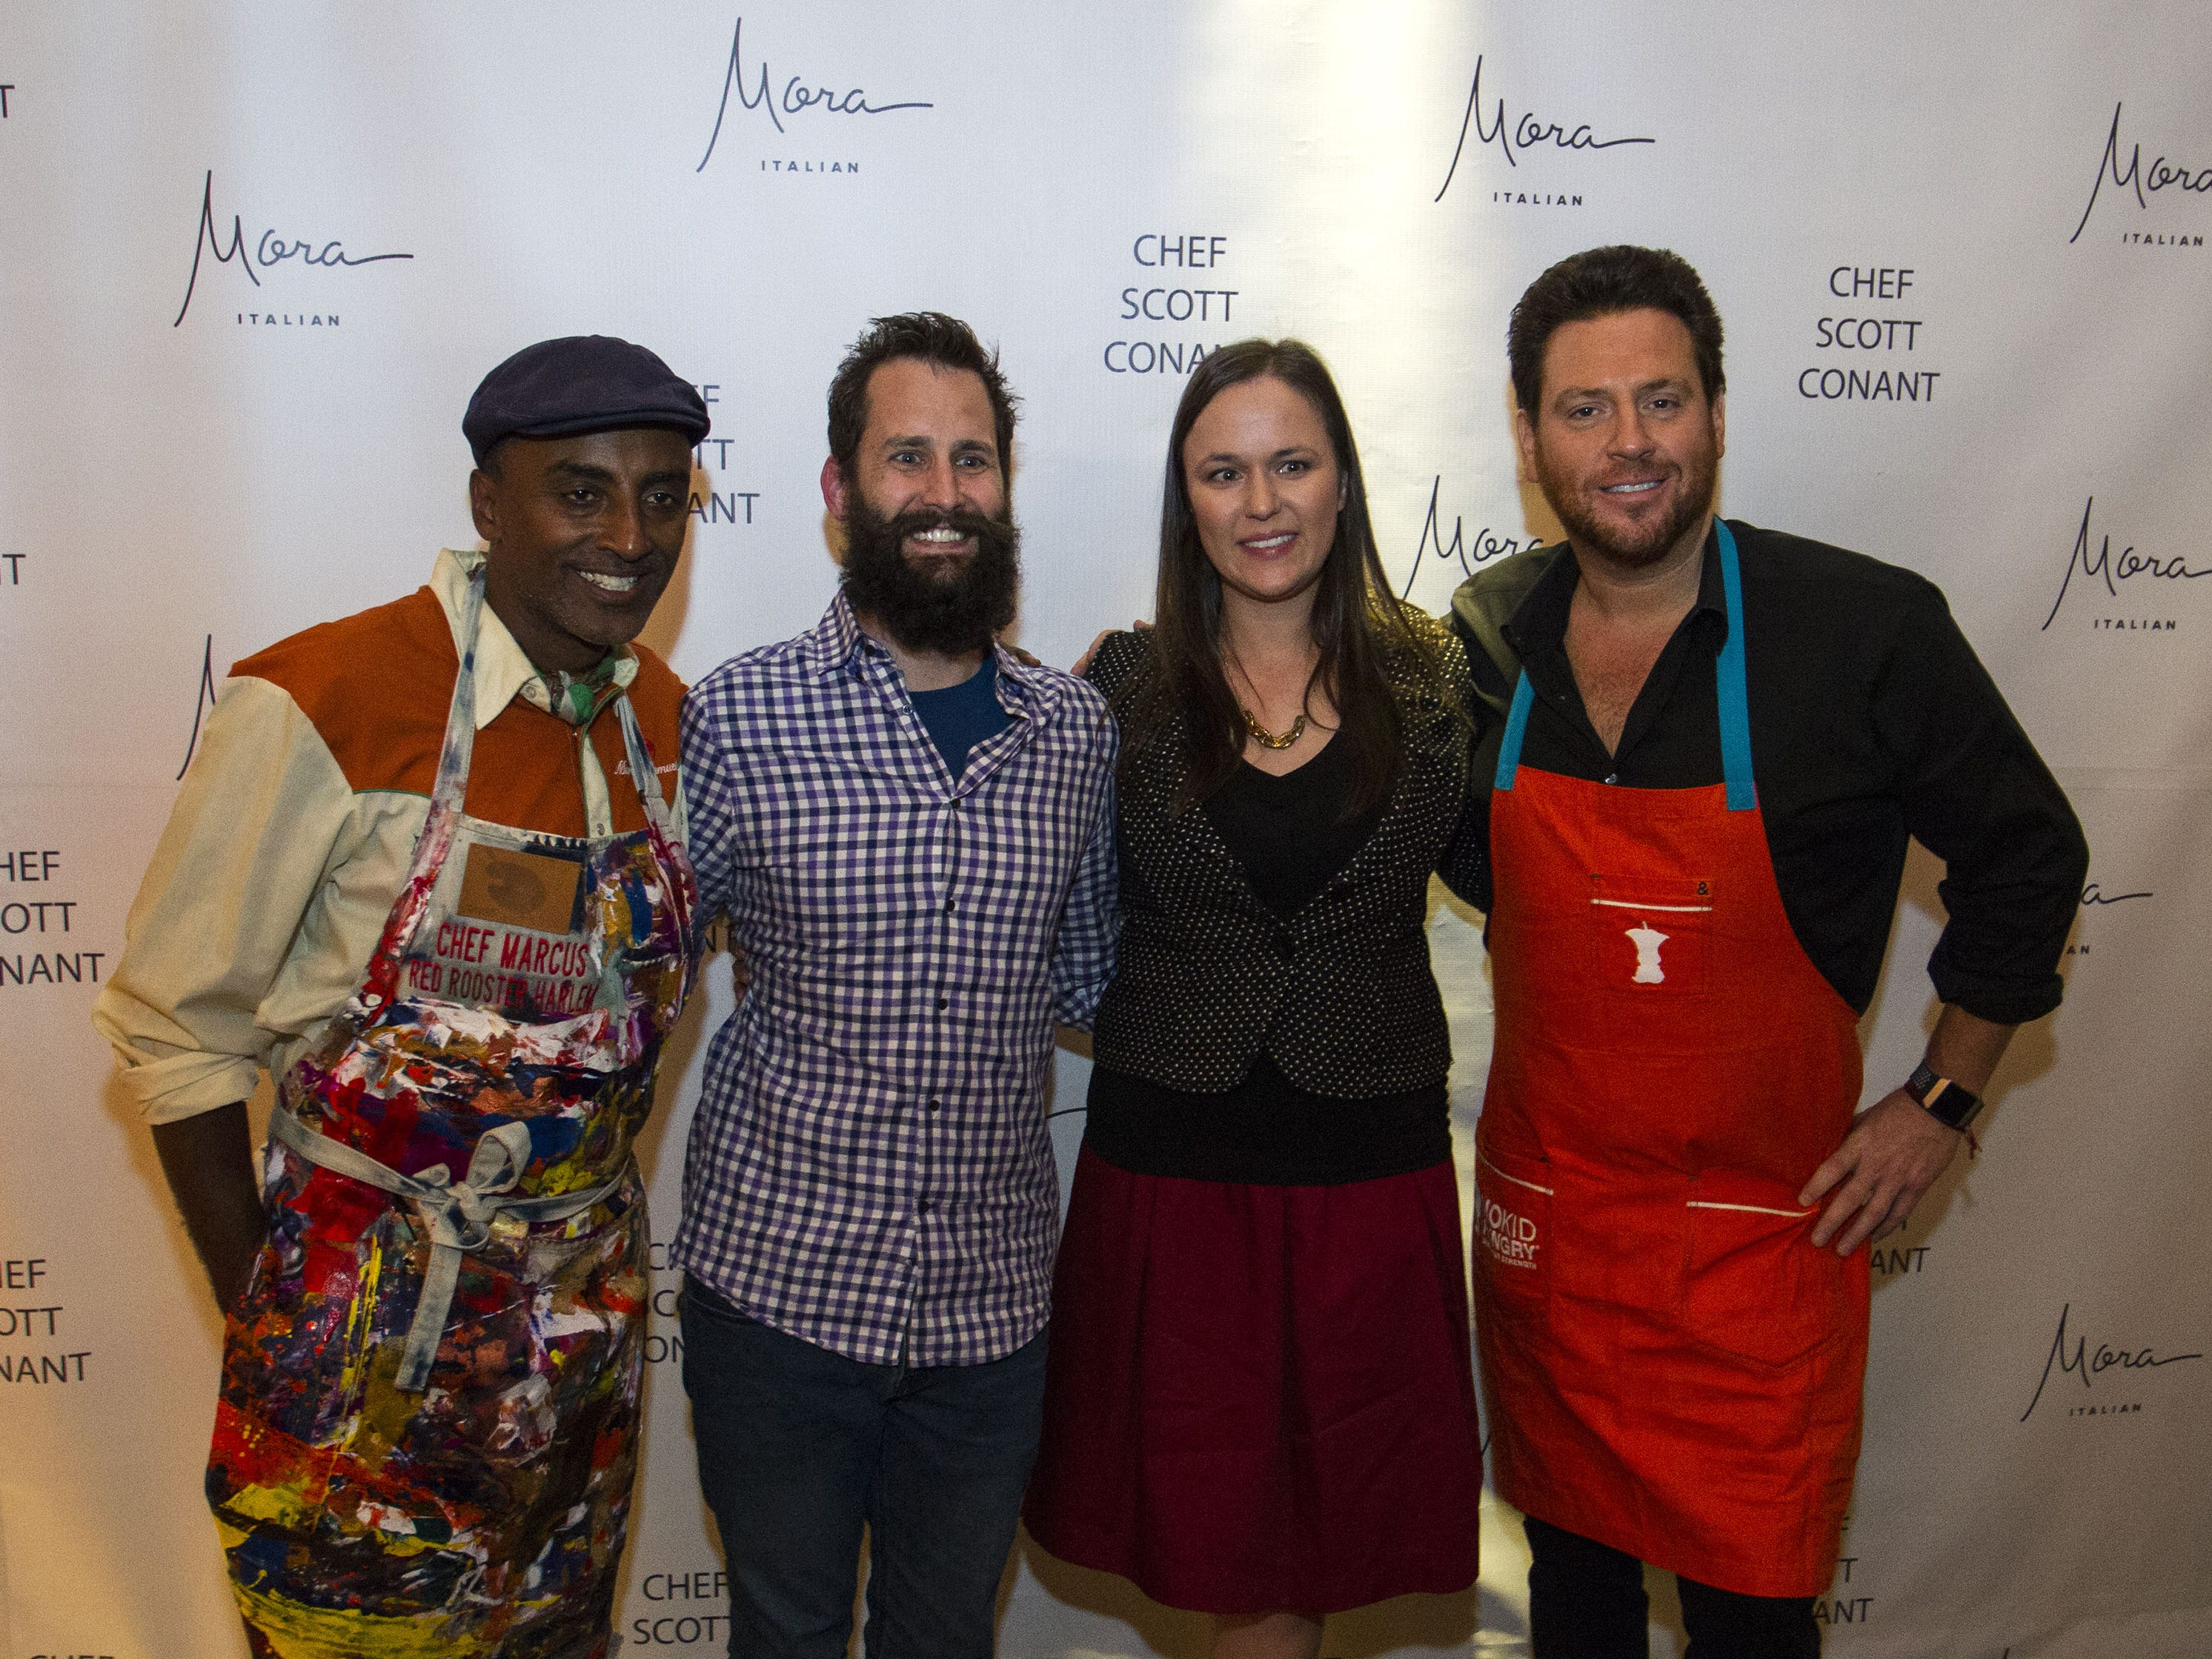 Chefs Marcus Samuelsson and Scott Conant pose with Justin and Kim Lavalette during the exclusive kickoff dining event at Mora Italian for azcentral Wine & Food Experience.